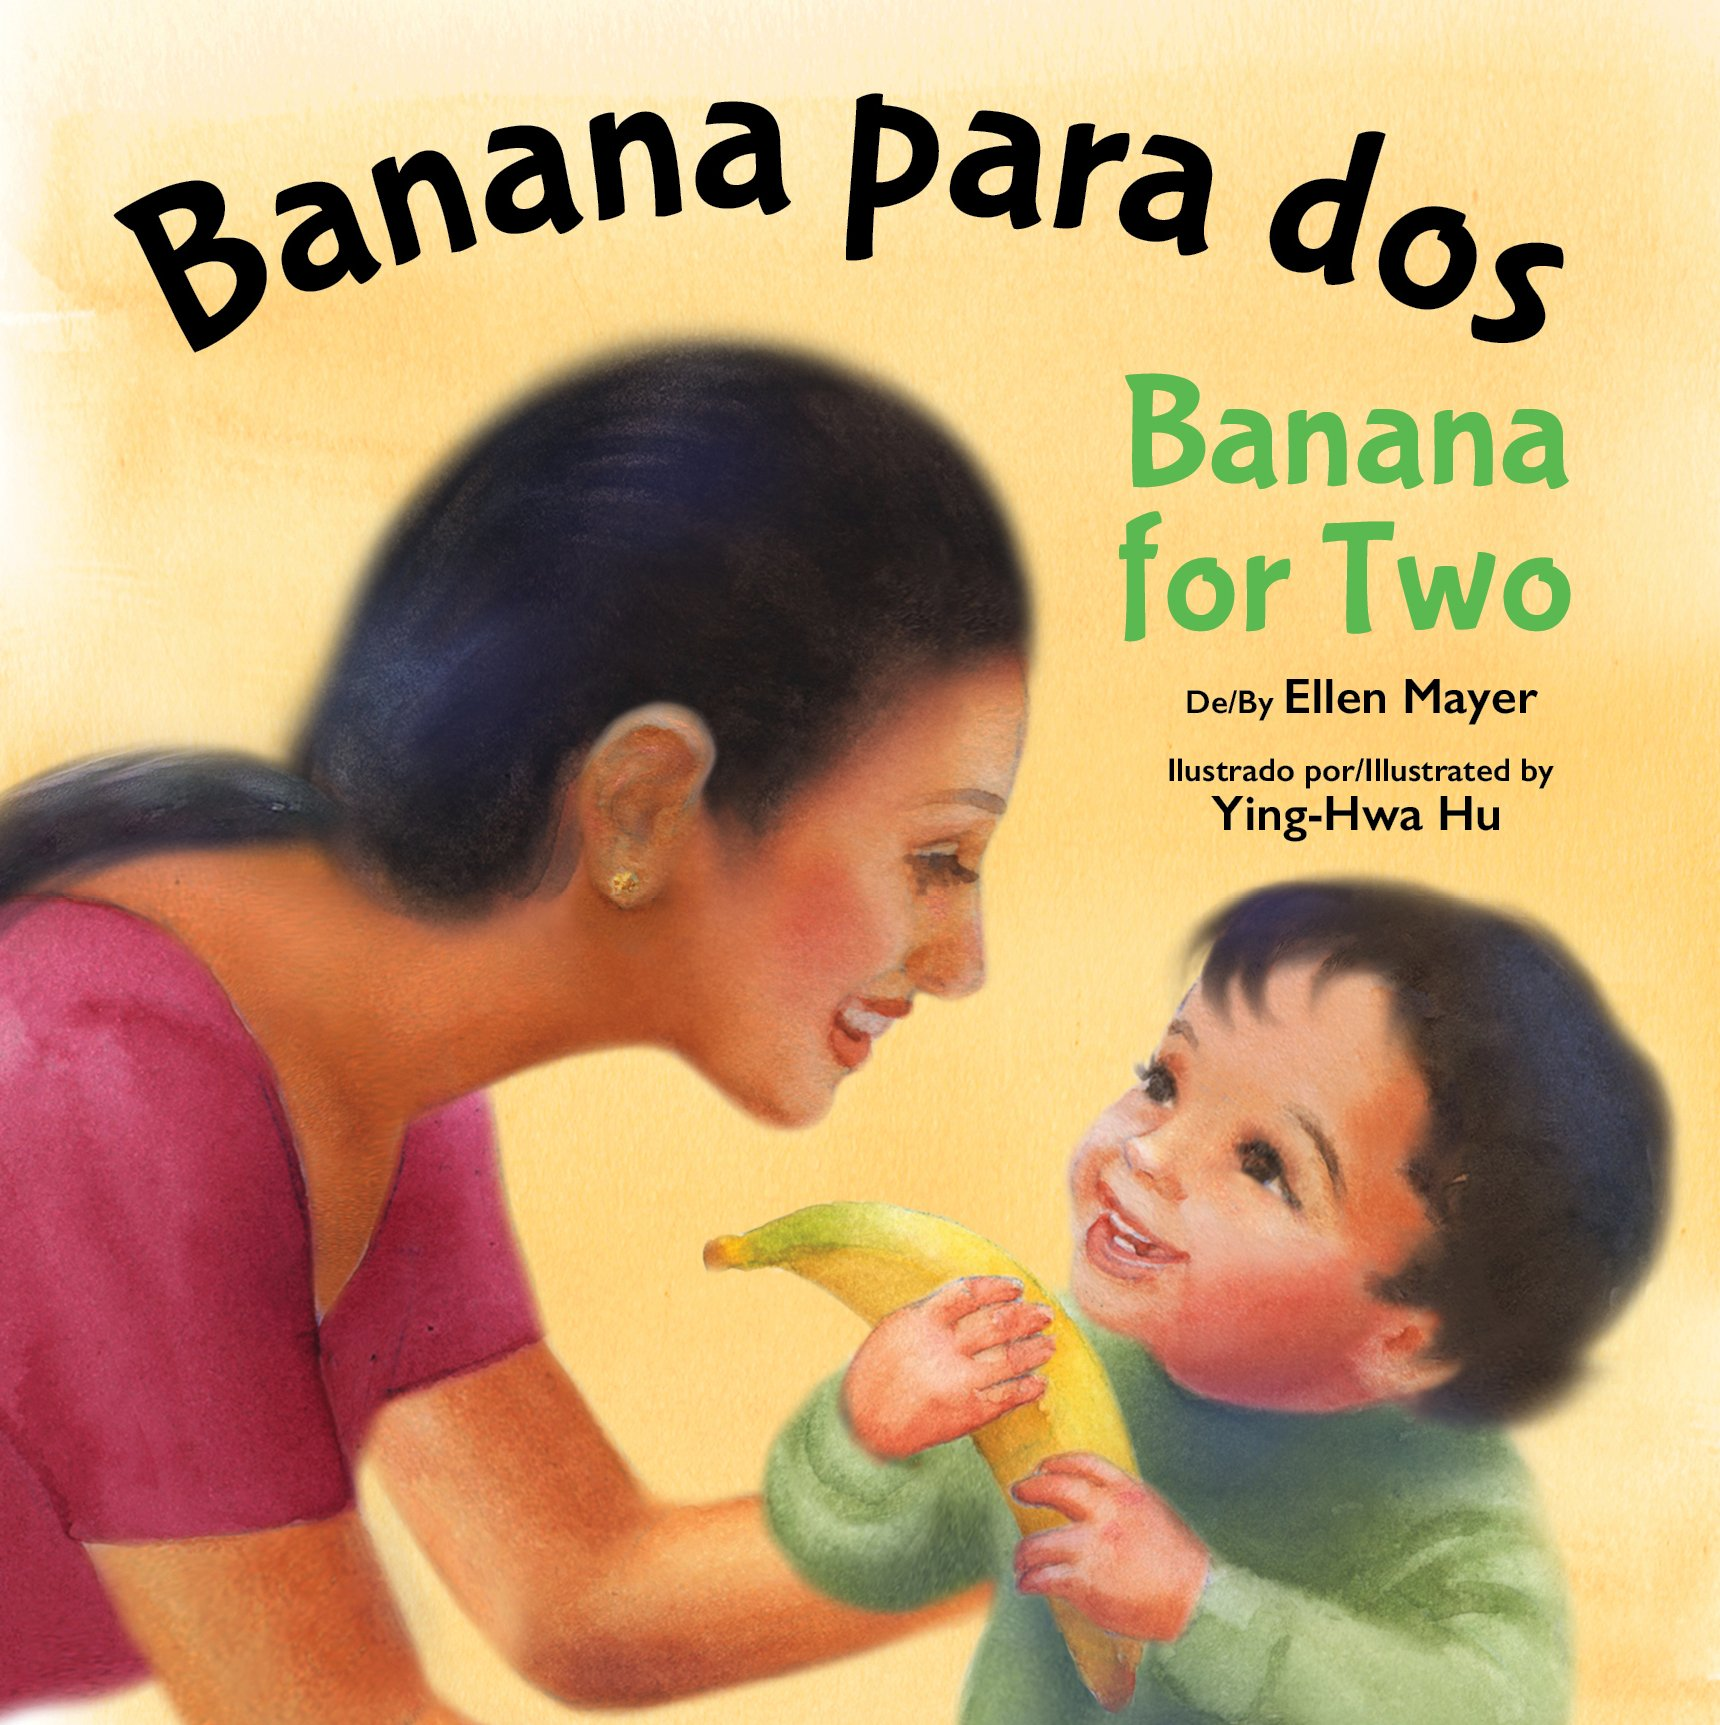 celebrate-picture-books-picture-book-review-banana-para-dos-cover